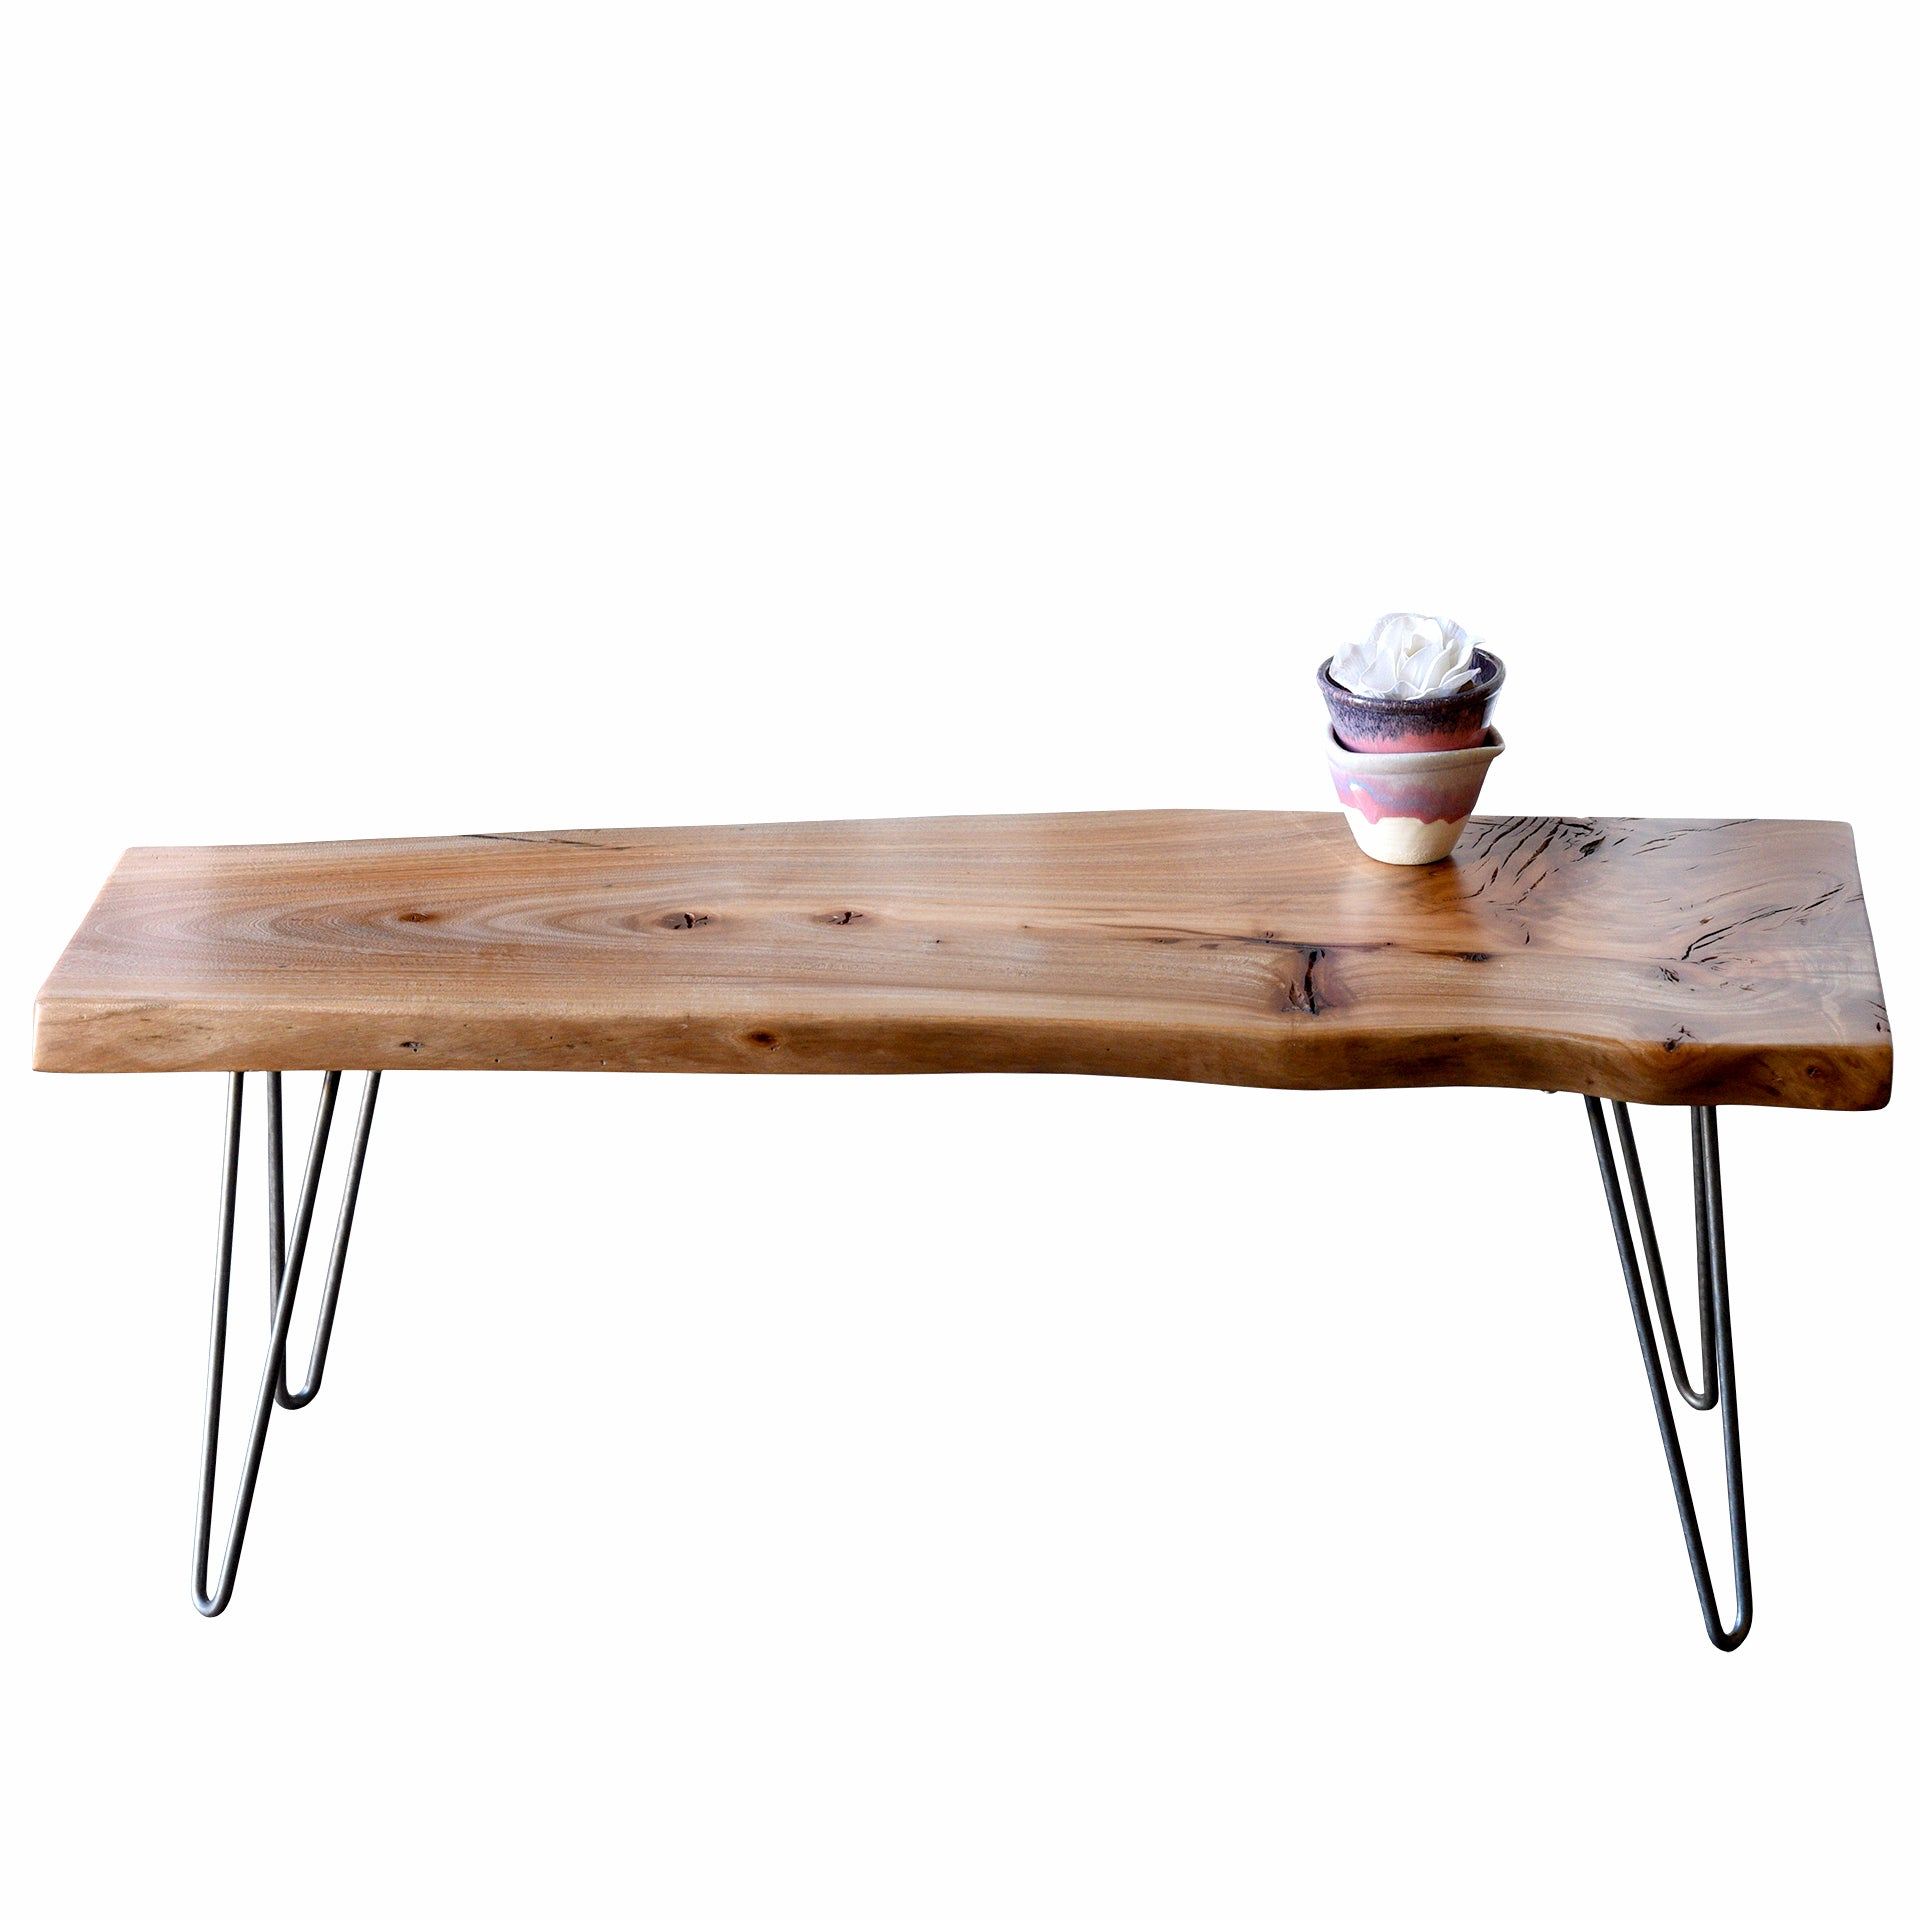 Rustic One Of A Kind Natural Teak Wood Slab Coffee Table: Coffee Tables